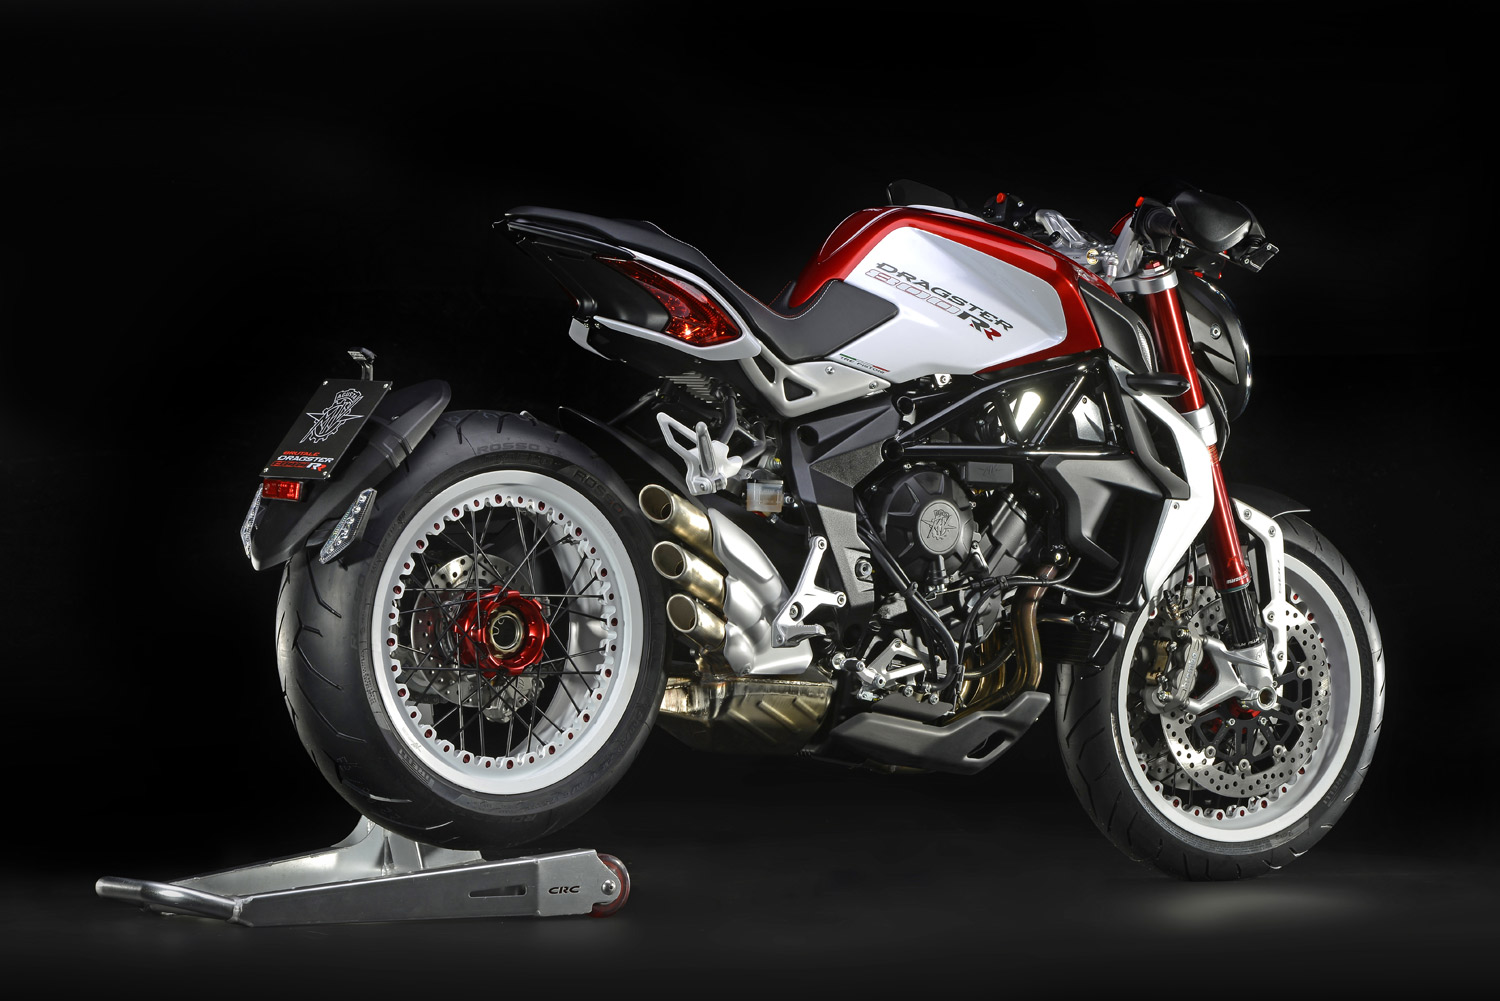 Mv agusta bikes could be sold at amg performance centres shifting